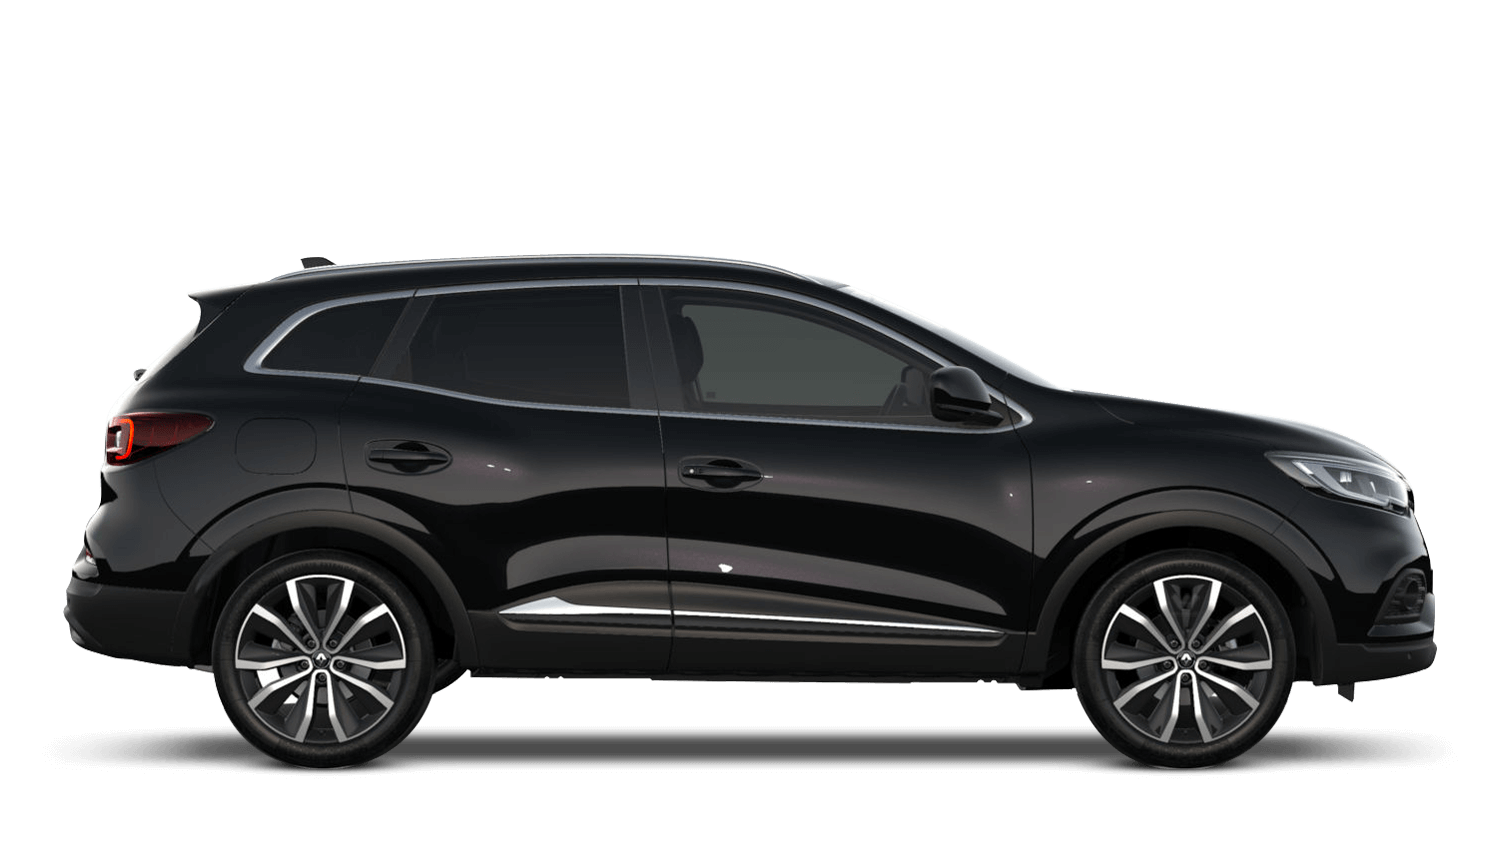 Diamond Black New Renault KADJAR